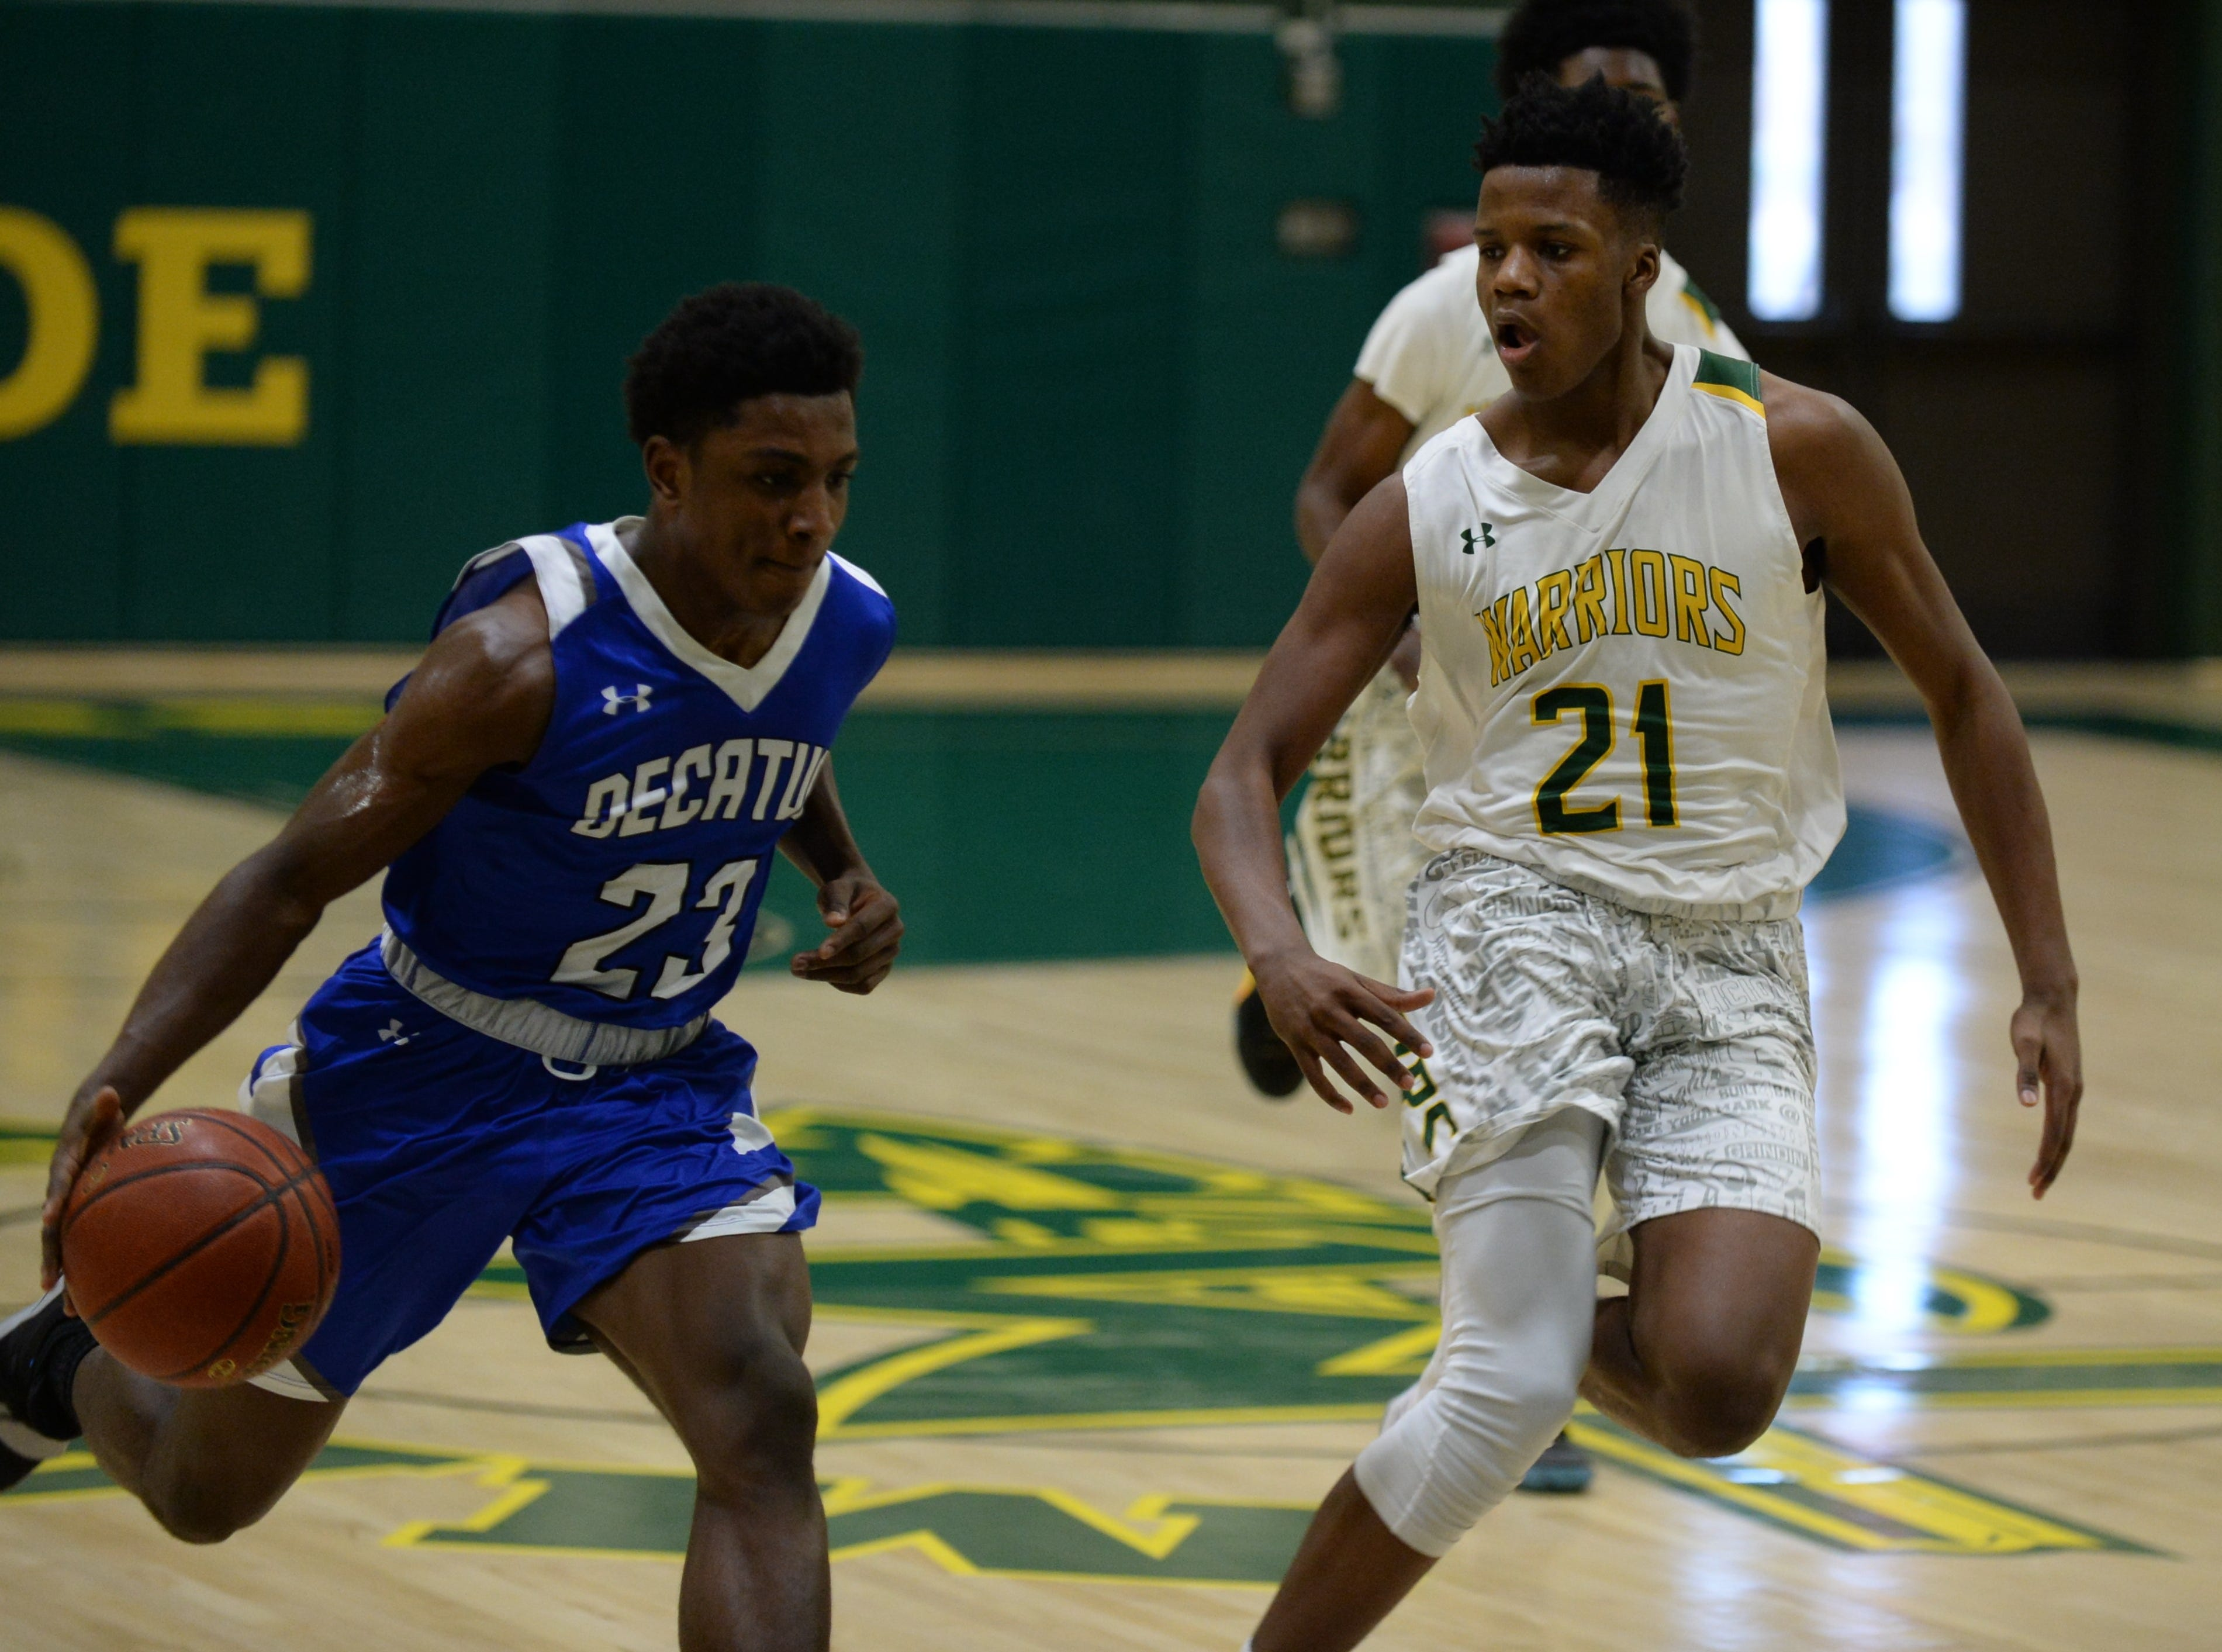 Stephen Decatur's London Drummond takes the ball past Mardela's Kyle Dickerson on Tuesday, Feb. 5, 2019.